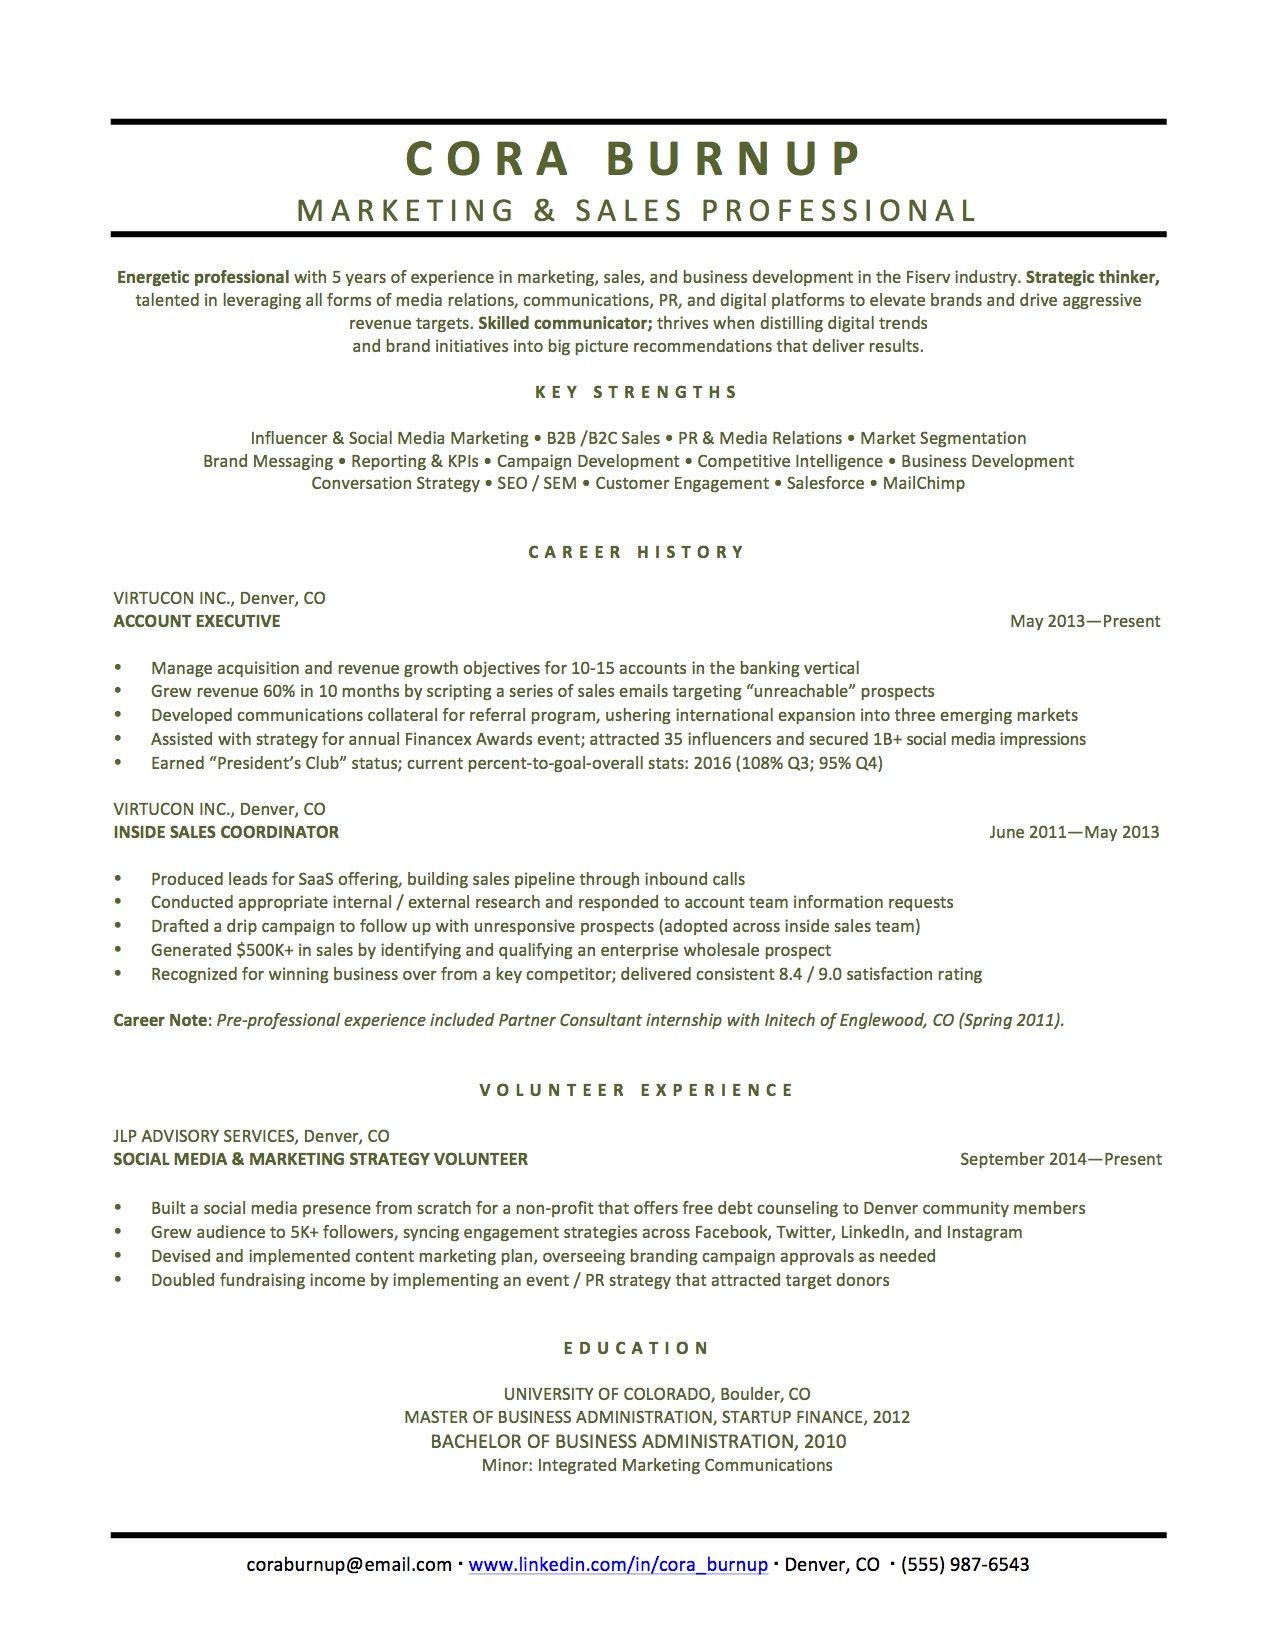 Career Summary Resume Example Resume For A Career Change Sample Distinctive  Documents Hertogenboschalstublieft  Example Of Career Summary